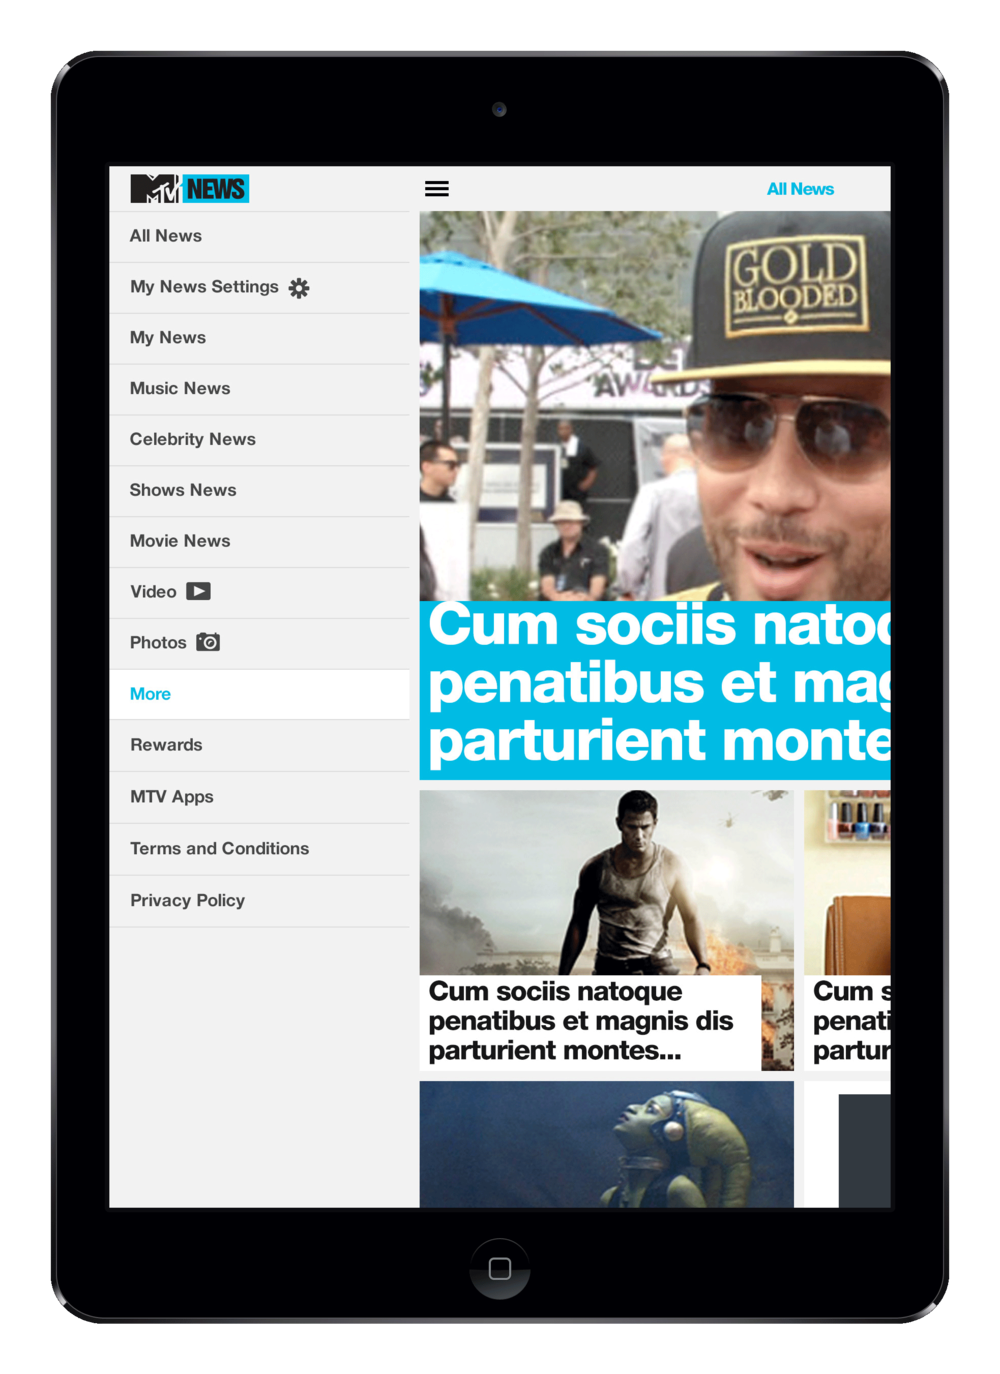 mtv-news-ipad-screens-03.png